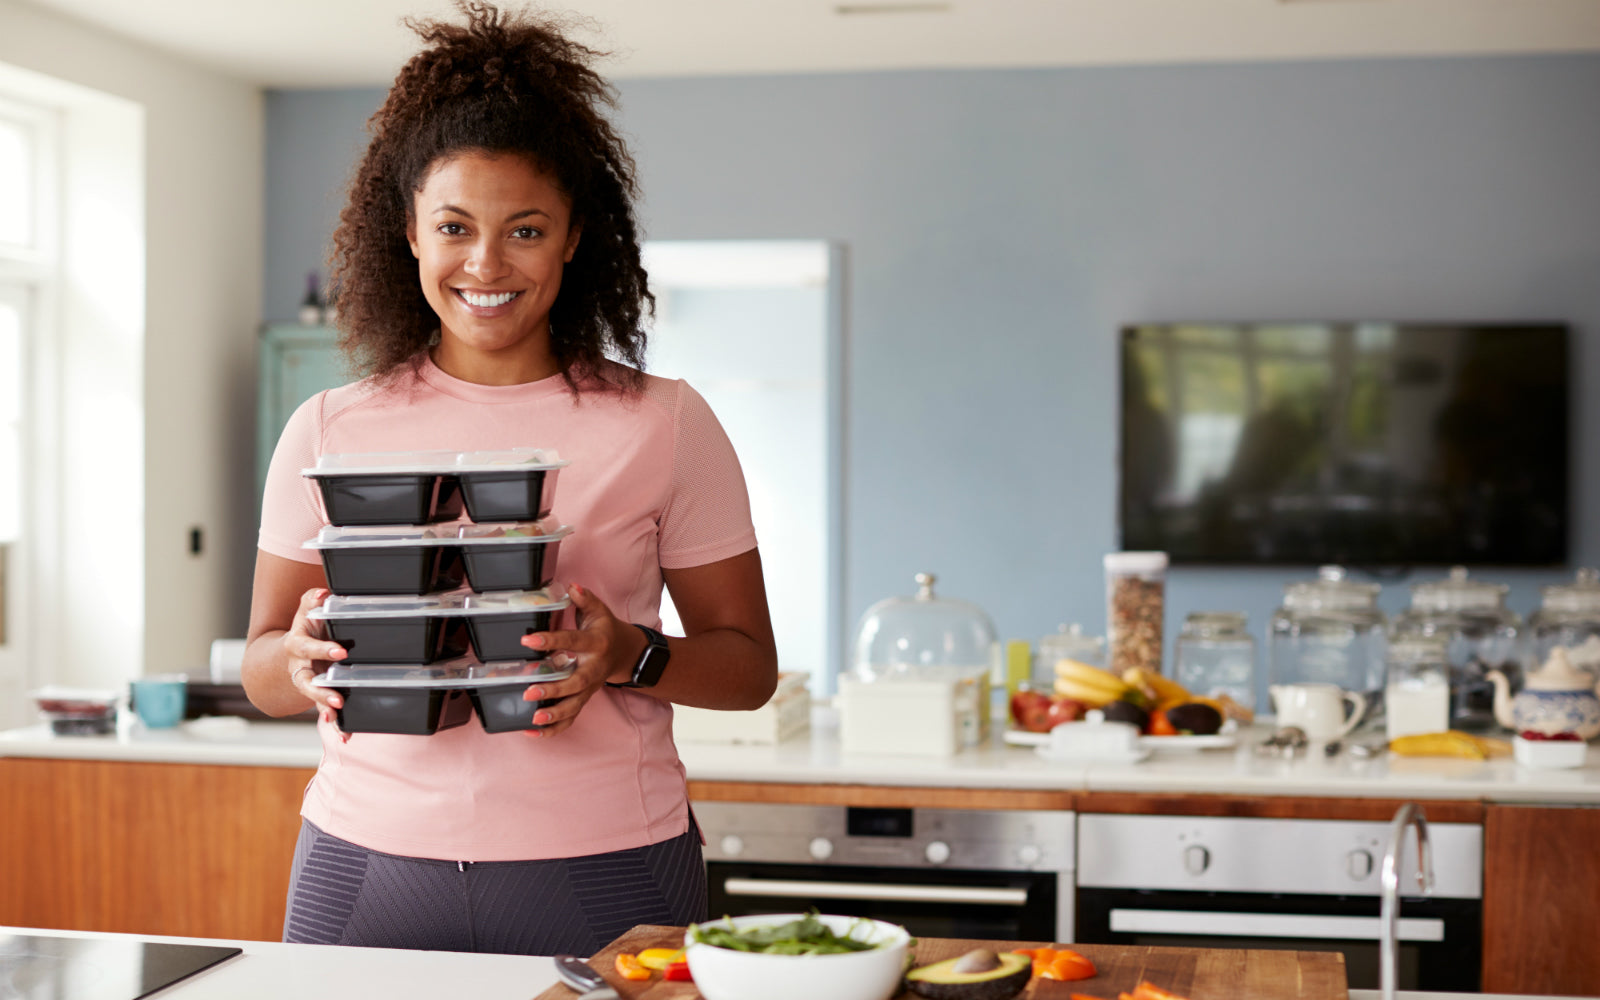 Our Top 10 Time Saving Tips to Meal Prep Like a Pro